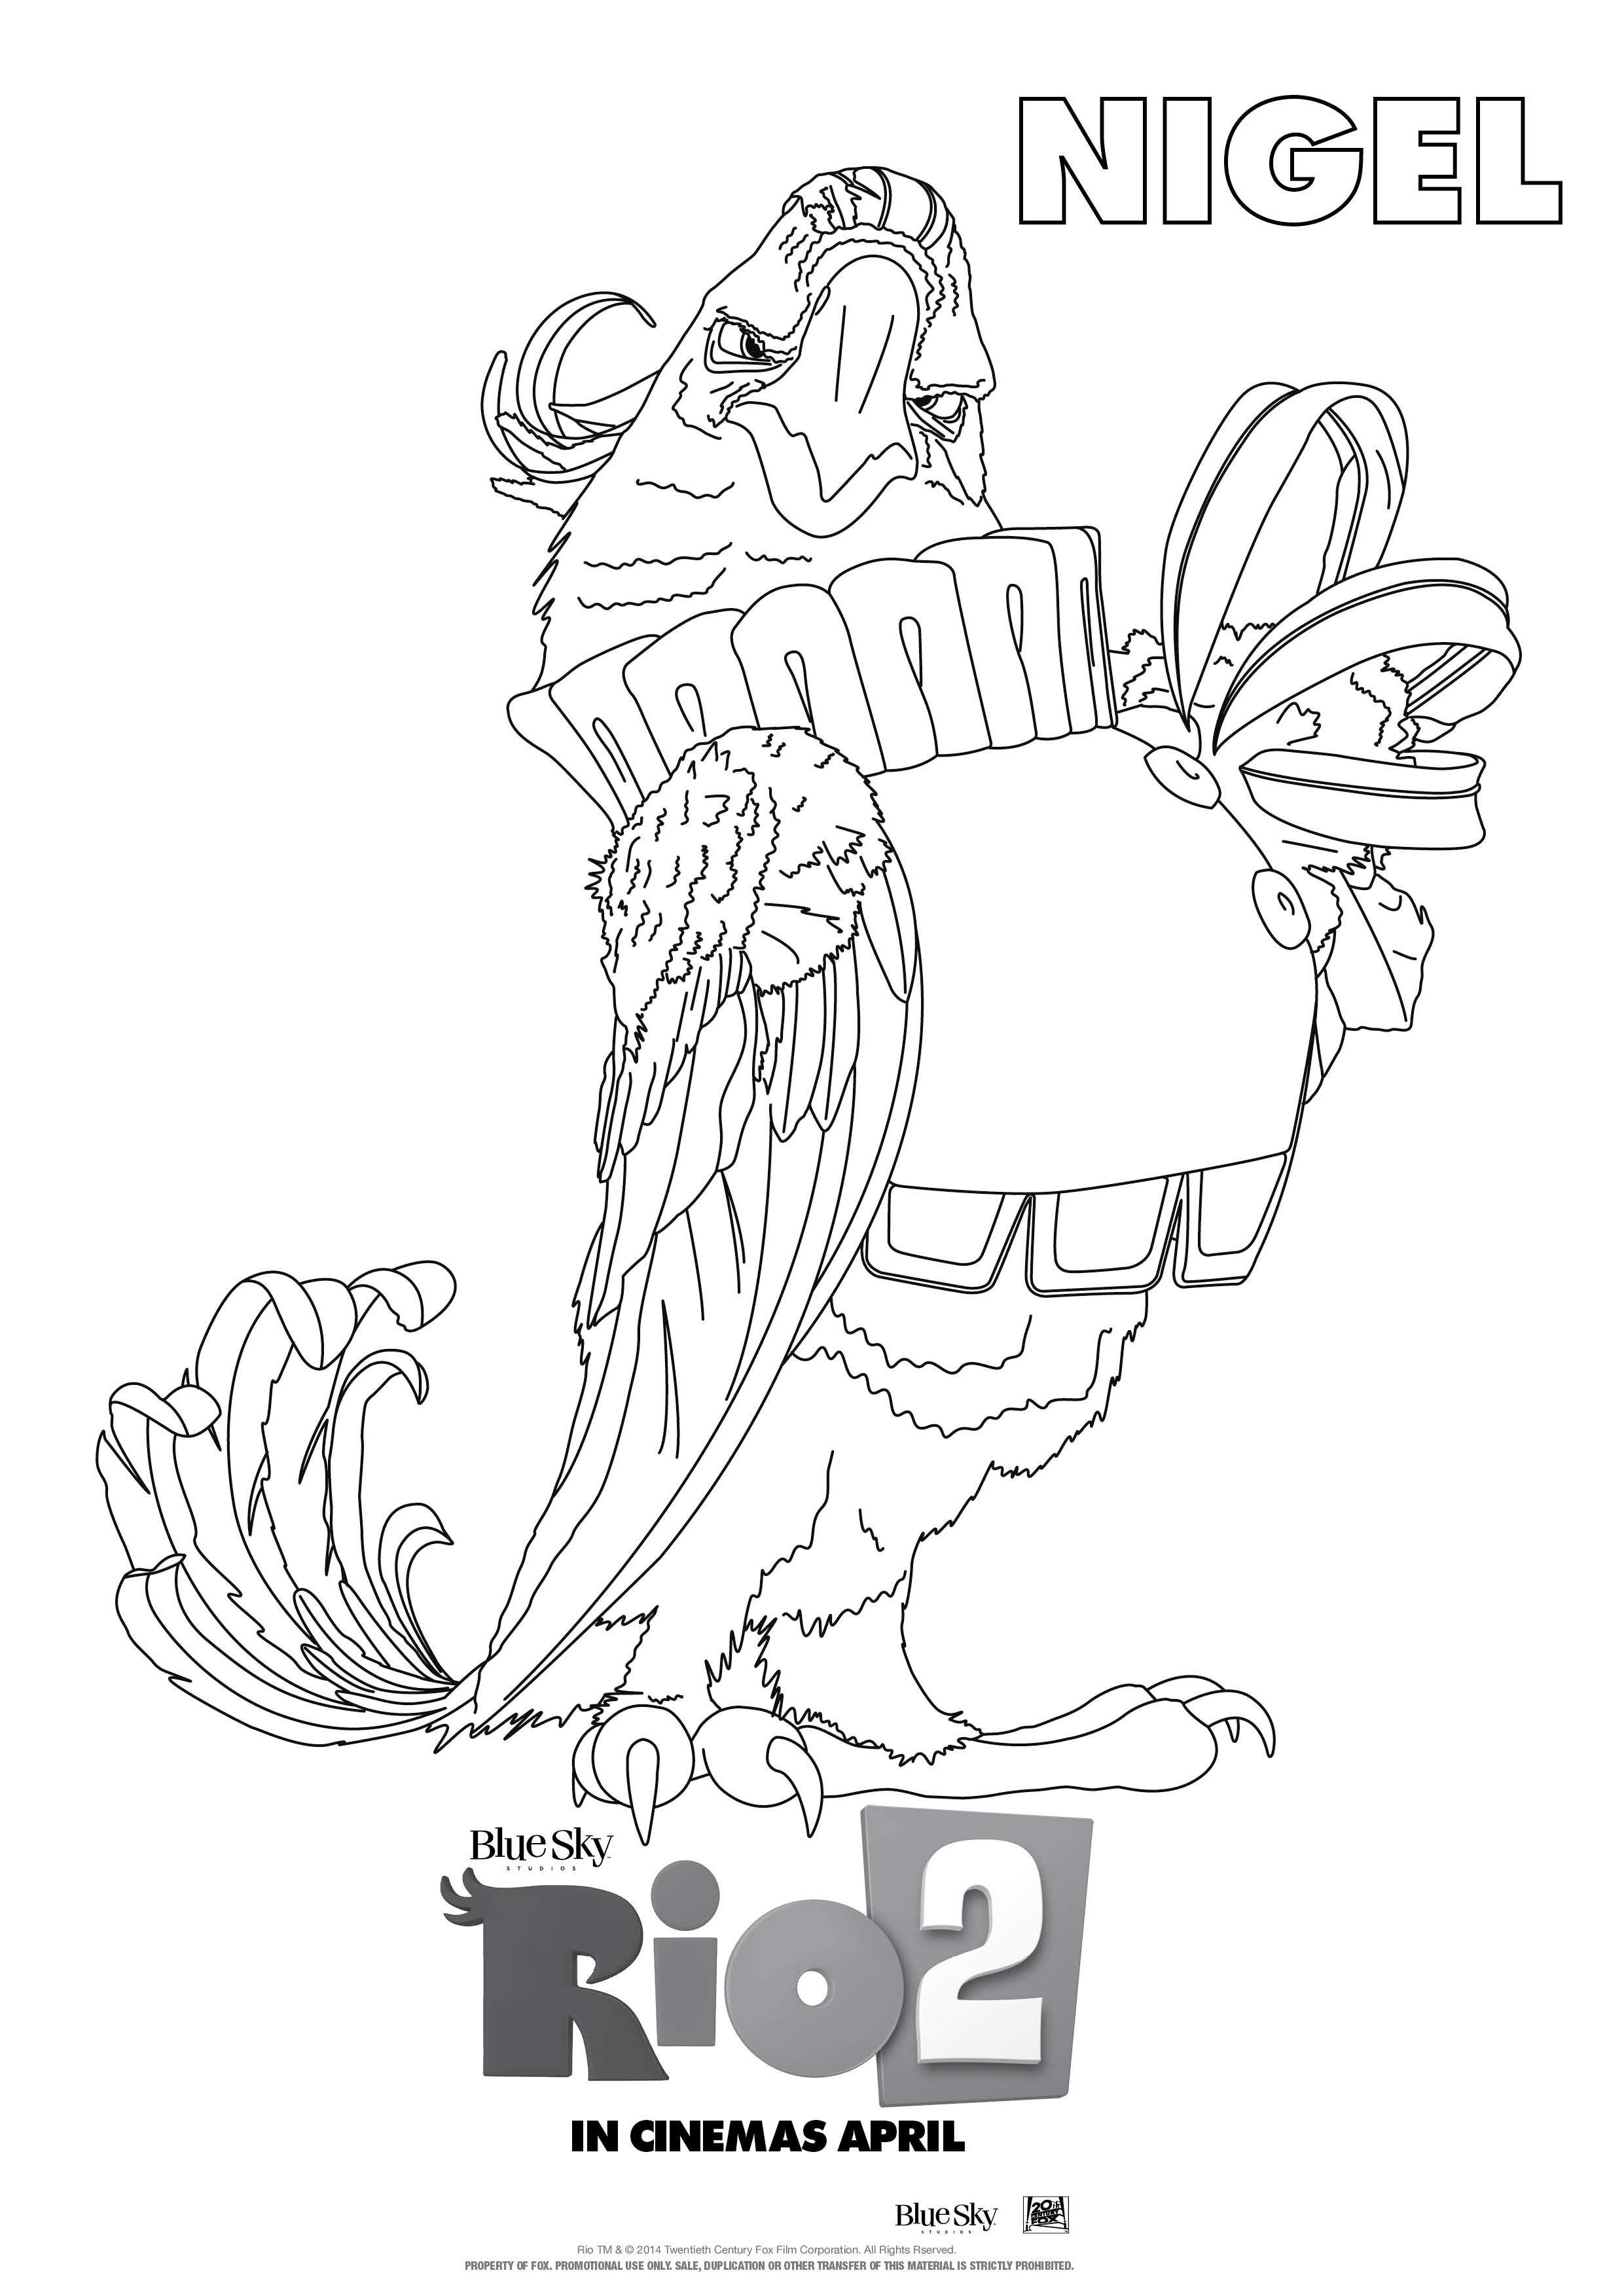 Rio 2 Colouring Pages Mums In The Know Coloring Pages Frog Coloring Pages Colouring Pages